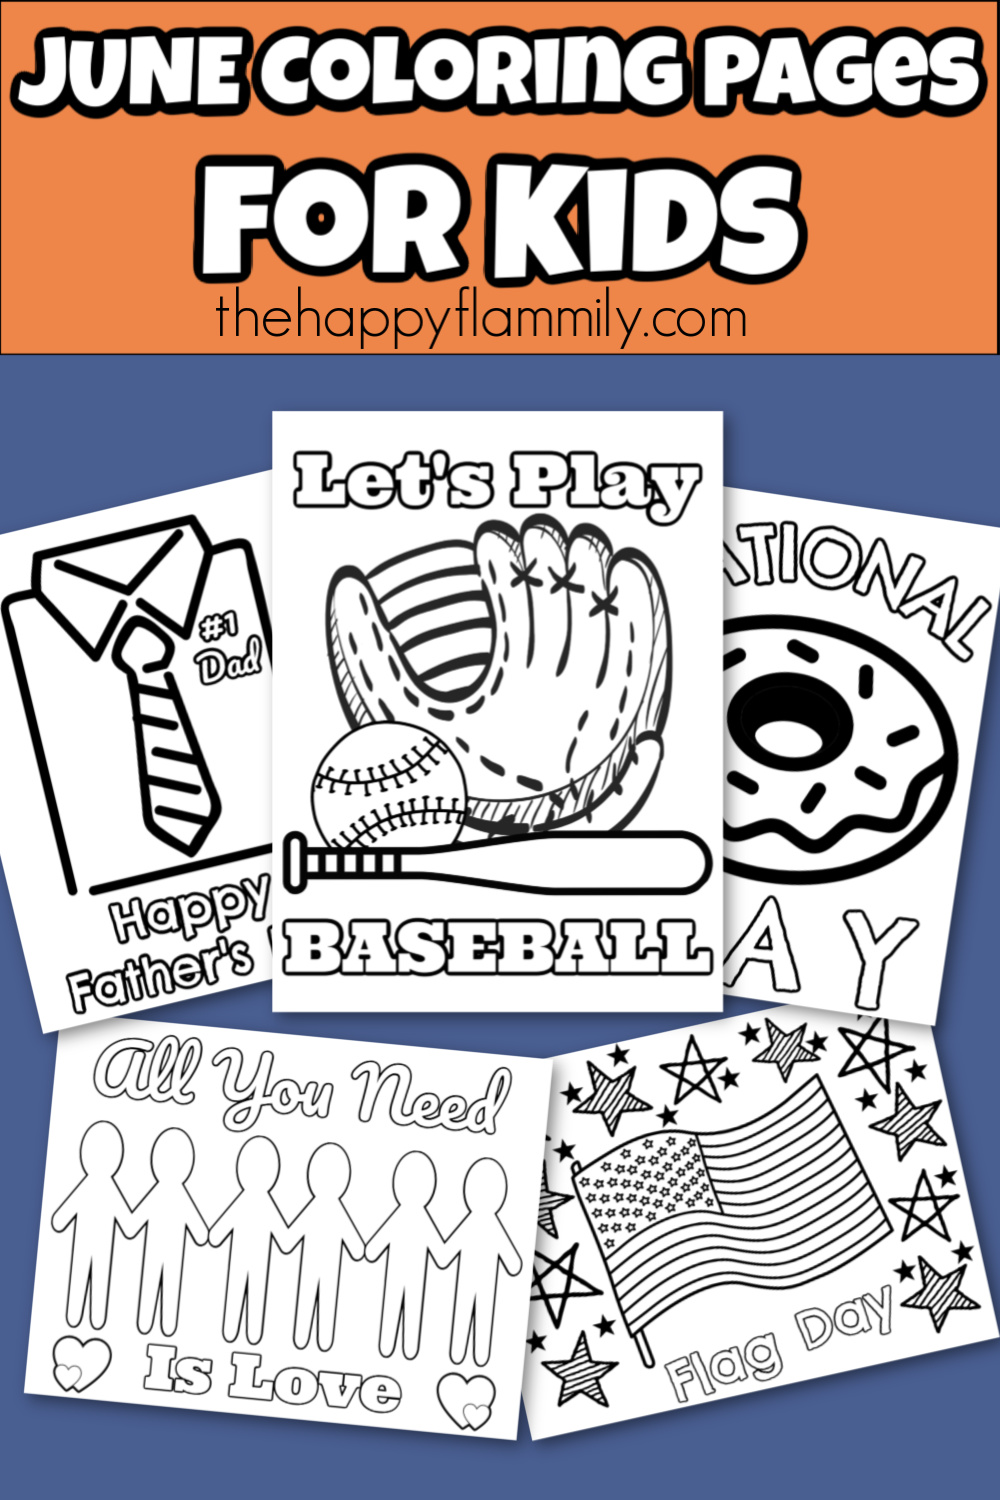 Coloring pages for kids. Coloring pages for animals. Coloring pages online. PDF coloring pages. New modern coloring pages for kids. Online coloring page subscription for kids. At home activity ideas. At home coloring for kids. Homeschool lesson ideas. Homeschool ideas. Fun kid crafts. Spring 2020 crafts for kids. #crafts #coloring #coloringpages #kids #learning #homeschool